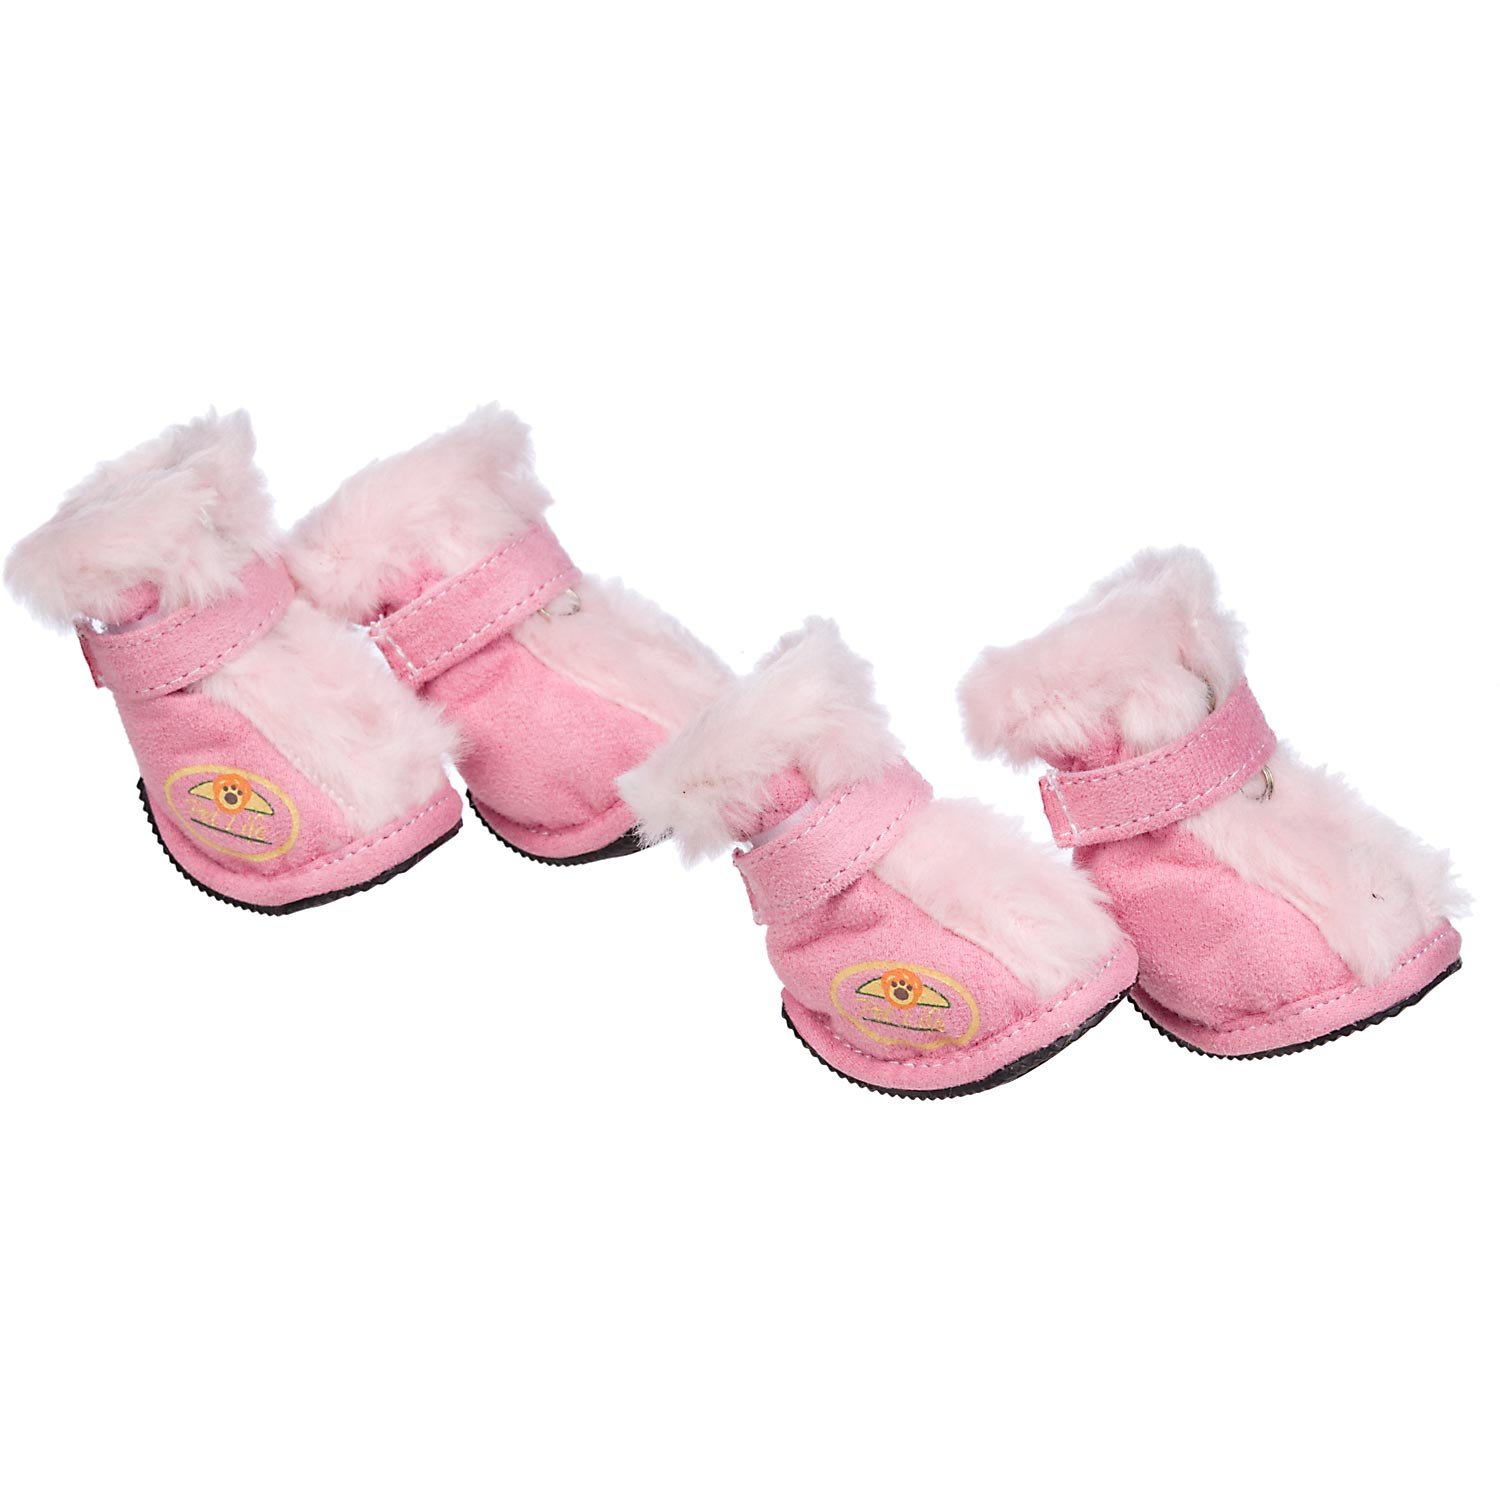 Pet Life Insulated Fashion Designer Plush Premium Fur-Comfort Suede Supportive Pet Dog Shoes Booties Boots, Small, Pink